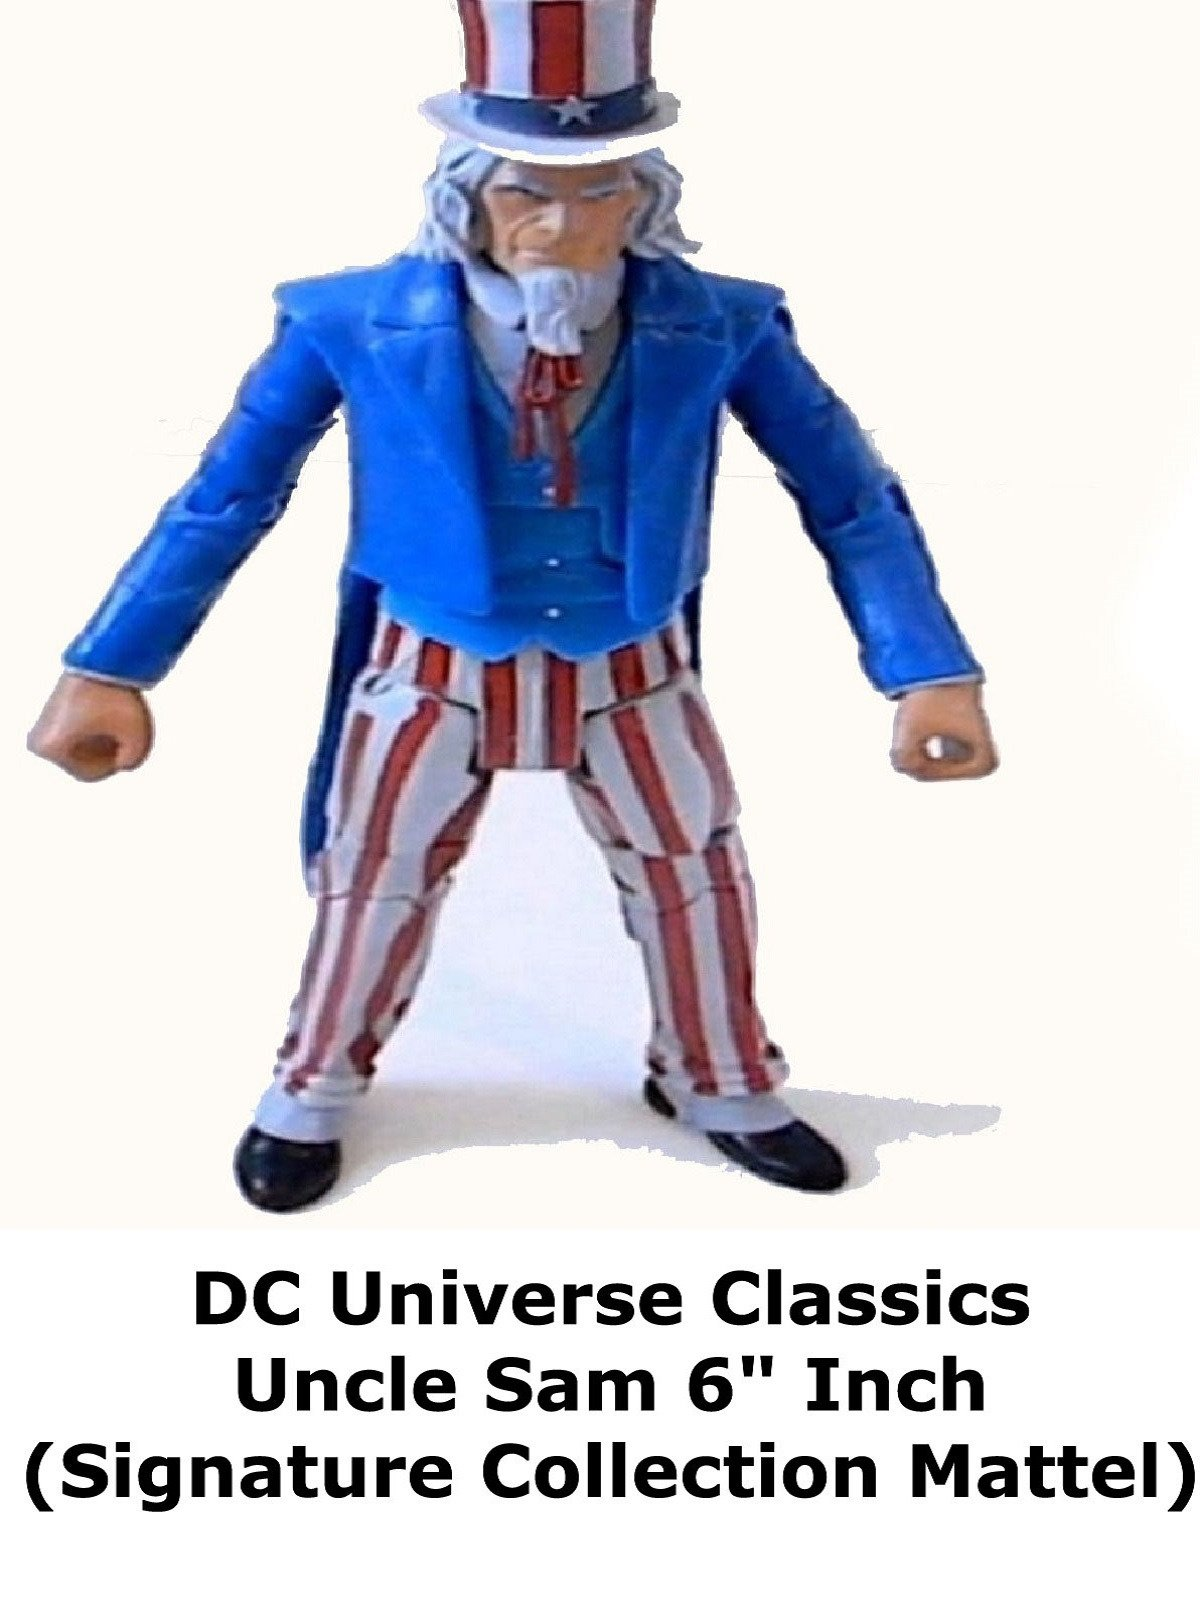 "Review: DC Universe Classics Uncle Sam 6"" Inch (Signature Collection Mattel)"